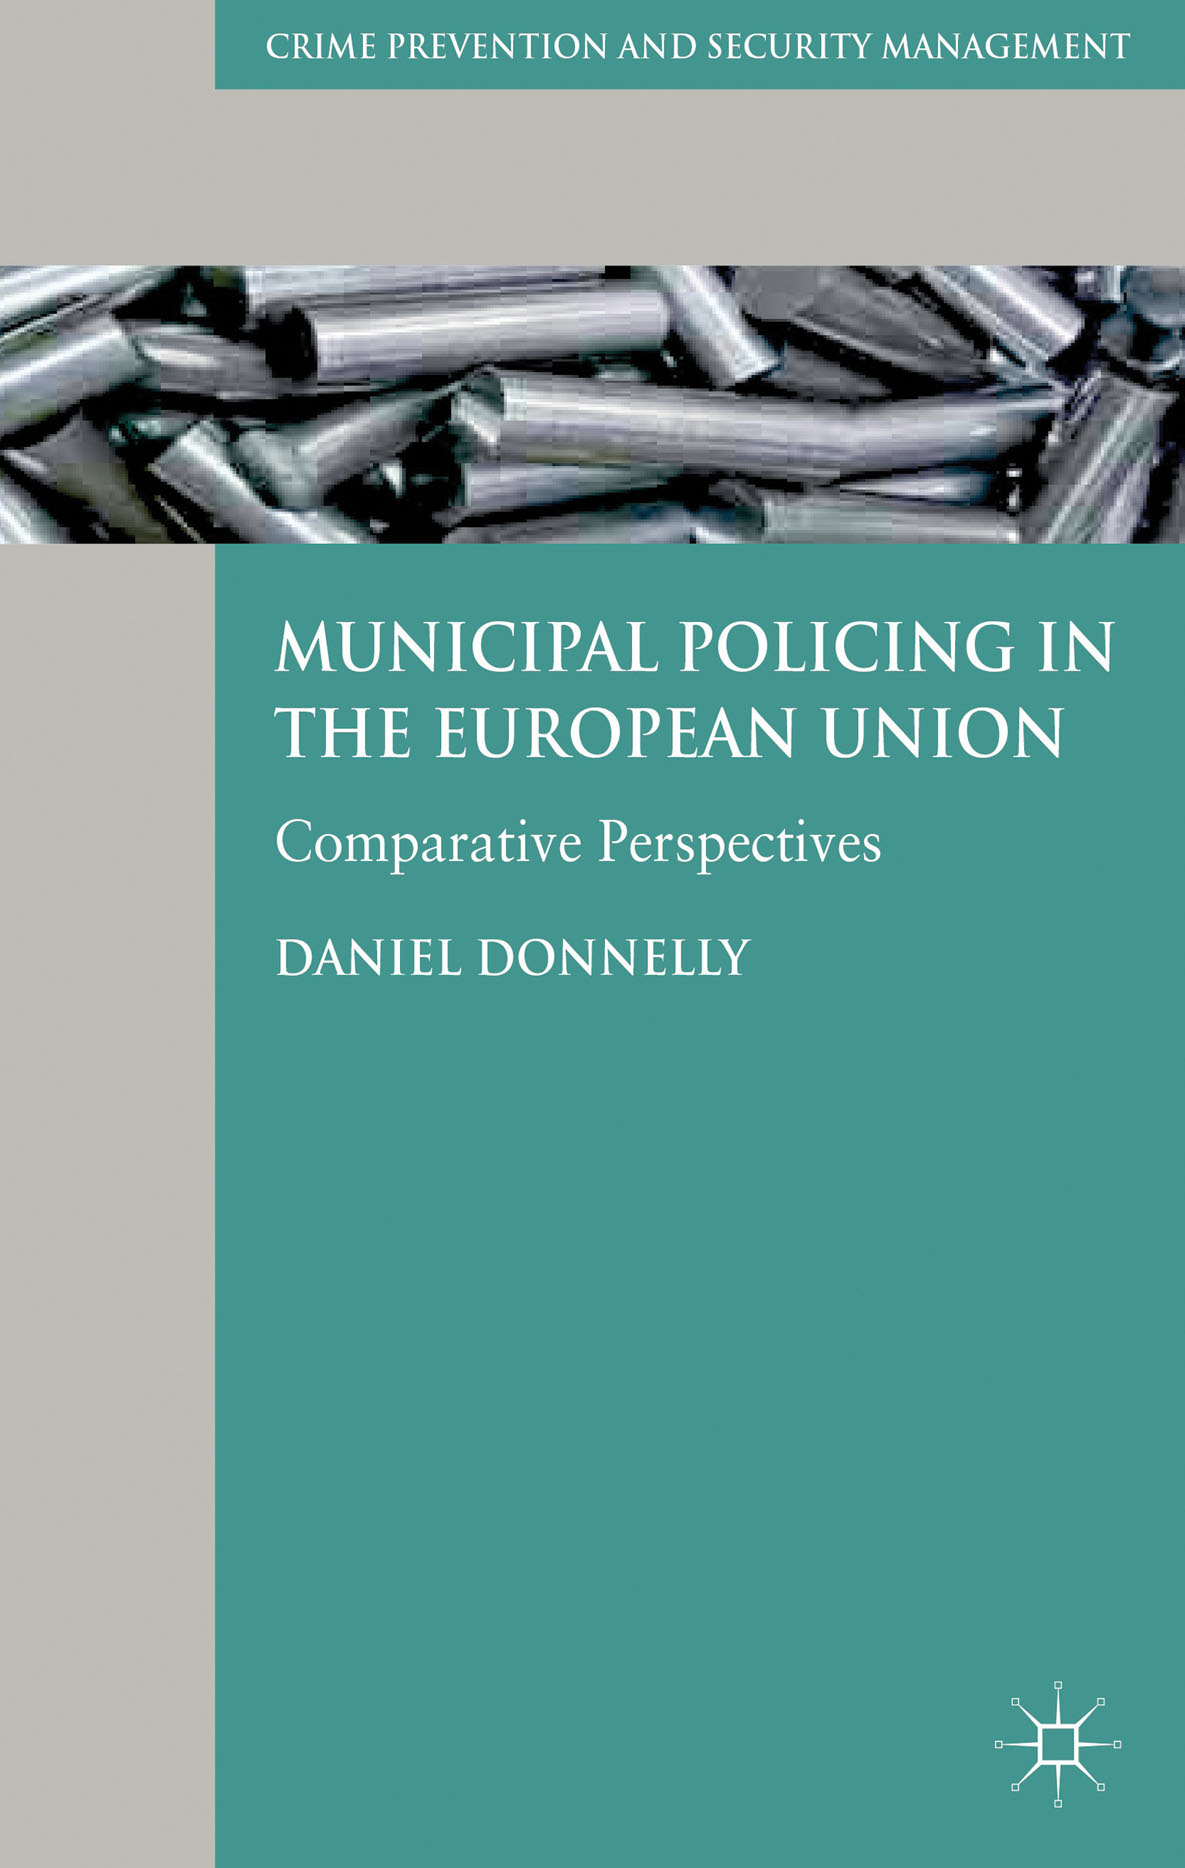 Book Cover for Municipal Policing.